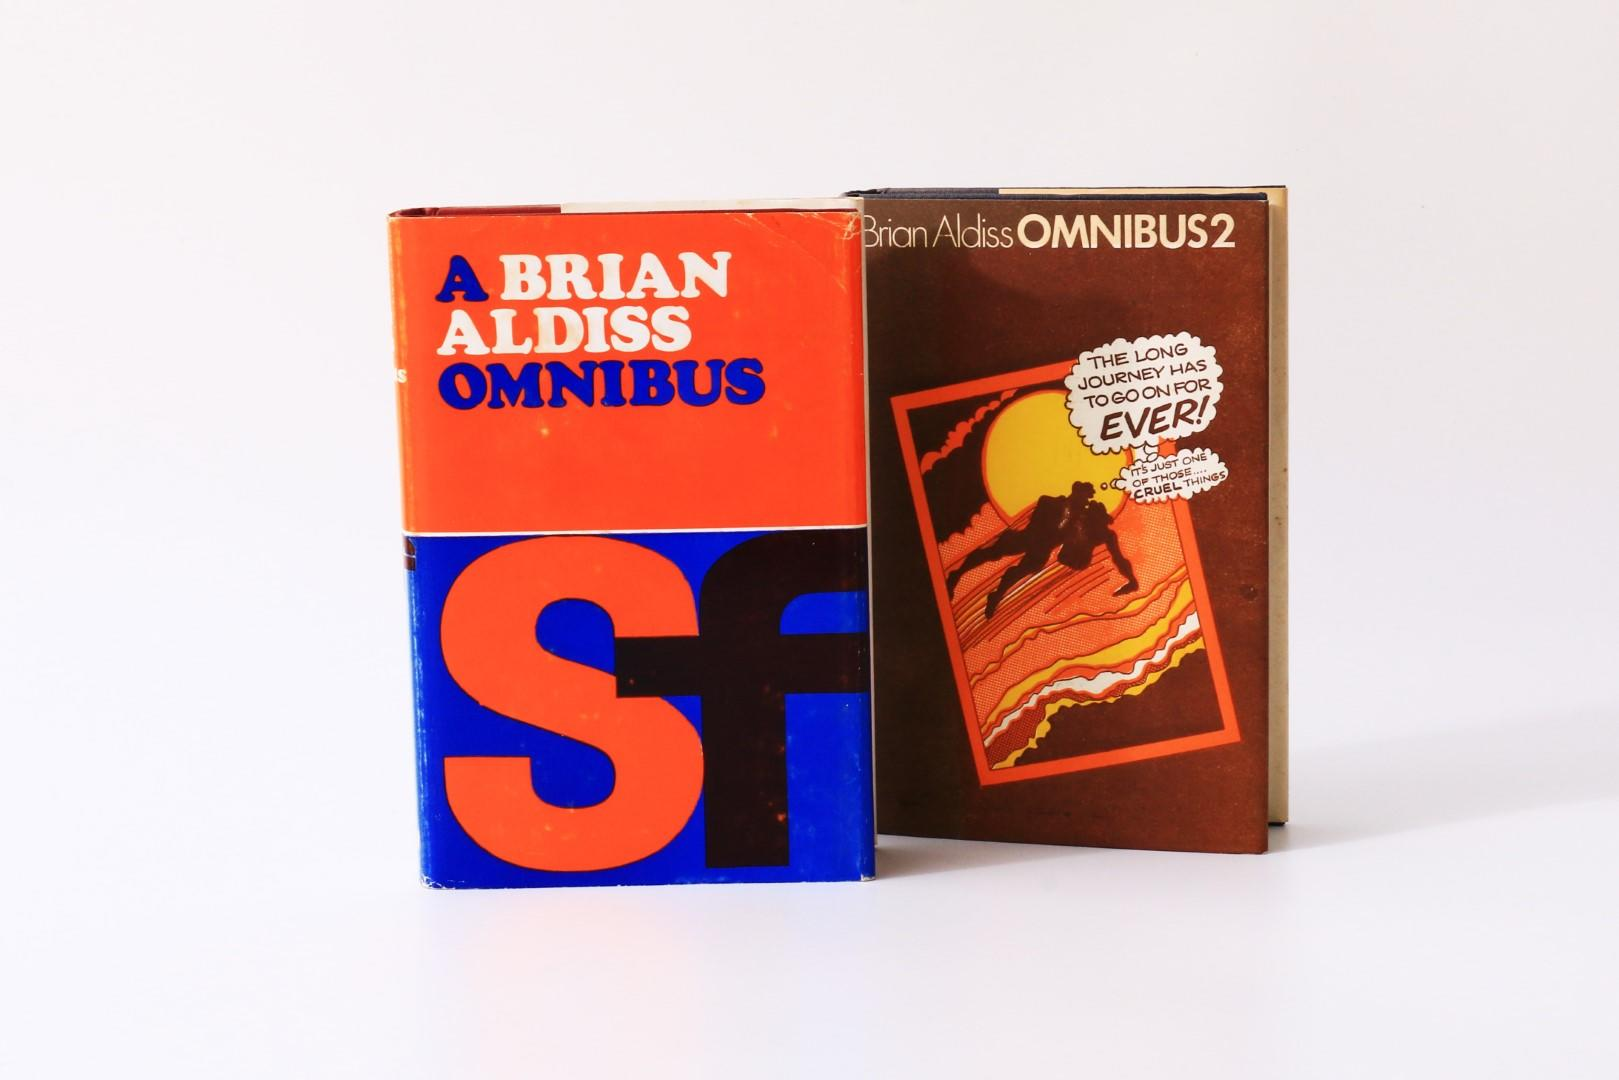 Brian Aldiss - A Brian Aldiss Omnibus w/ Omnibus 2 [the author's own copies] - Sidgwick & Jackson, 1969-1971, First Thus.